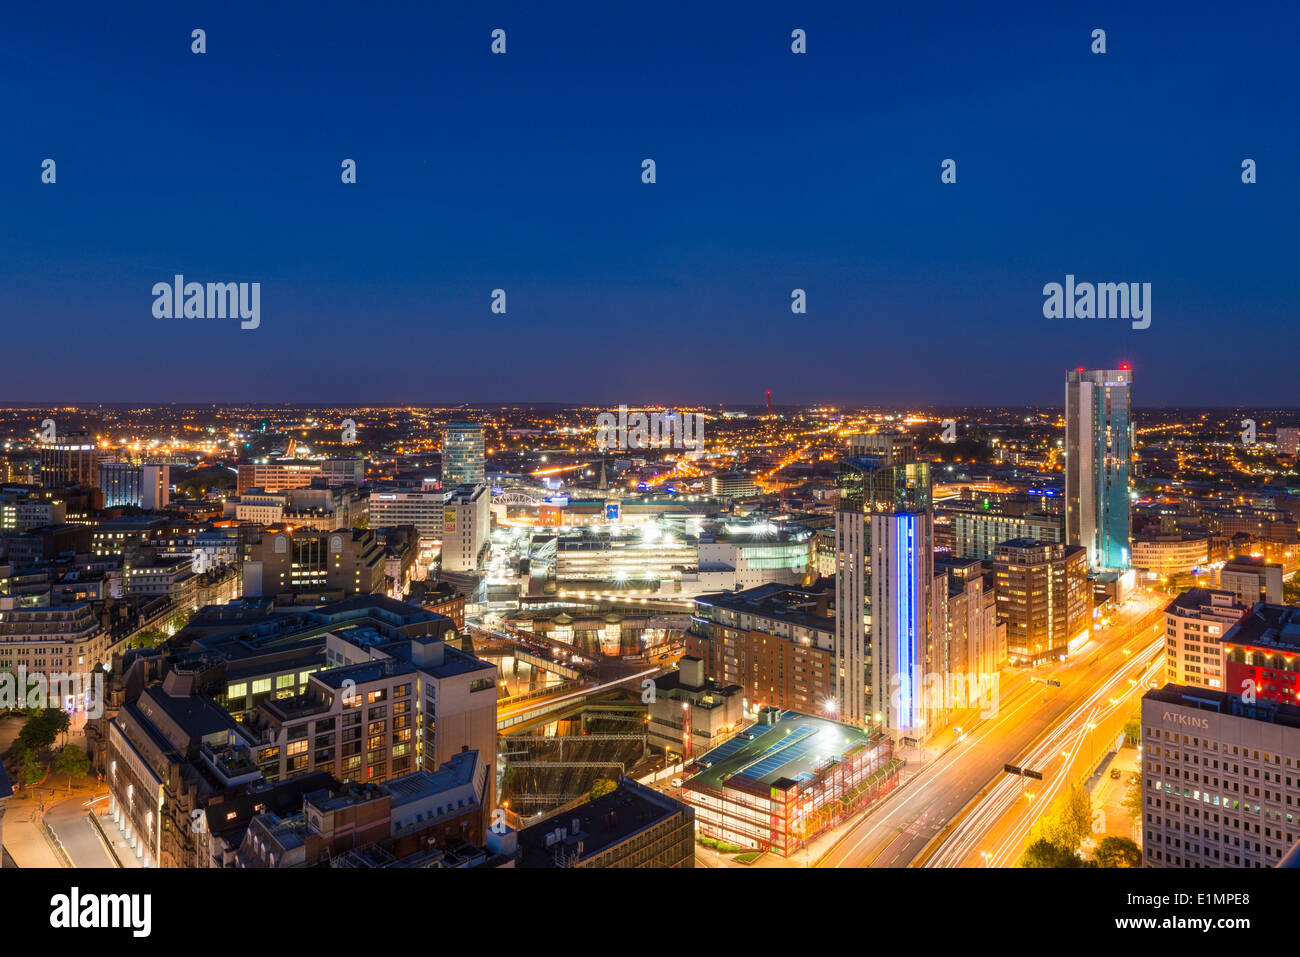 A night view of Birmingham city centre at night. Stock Photo